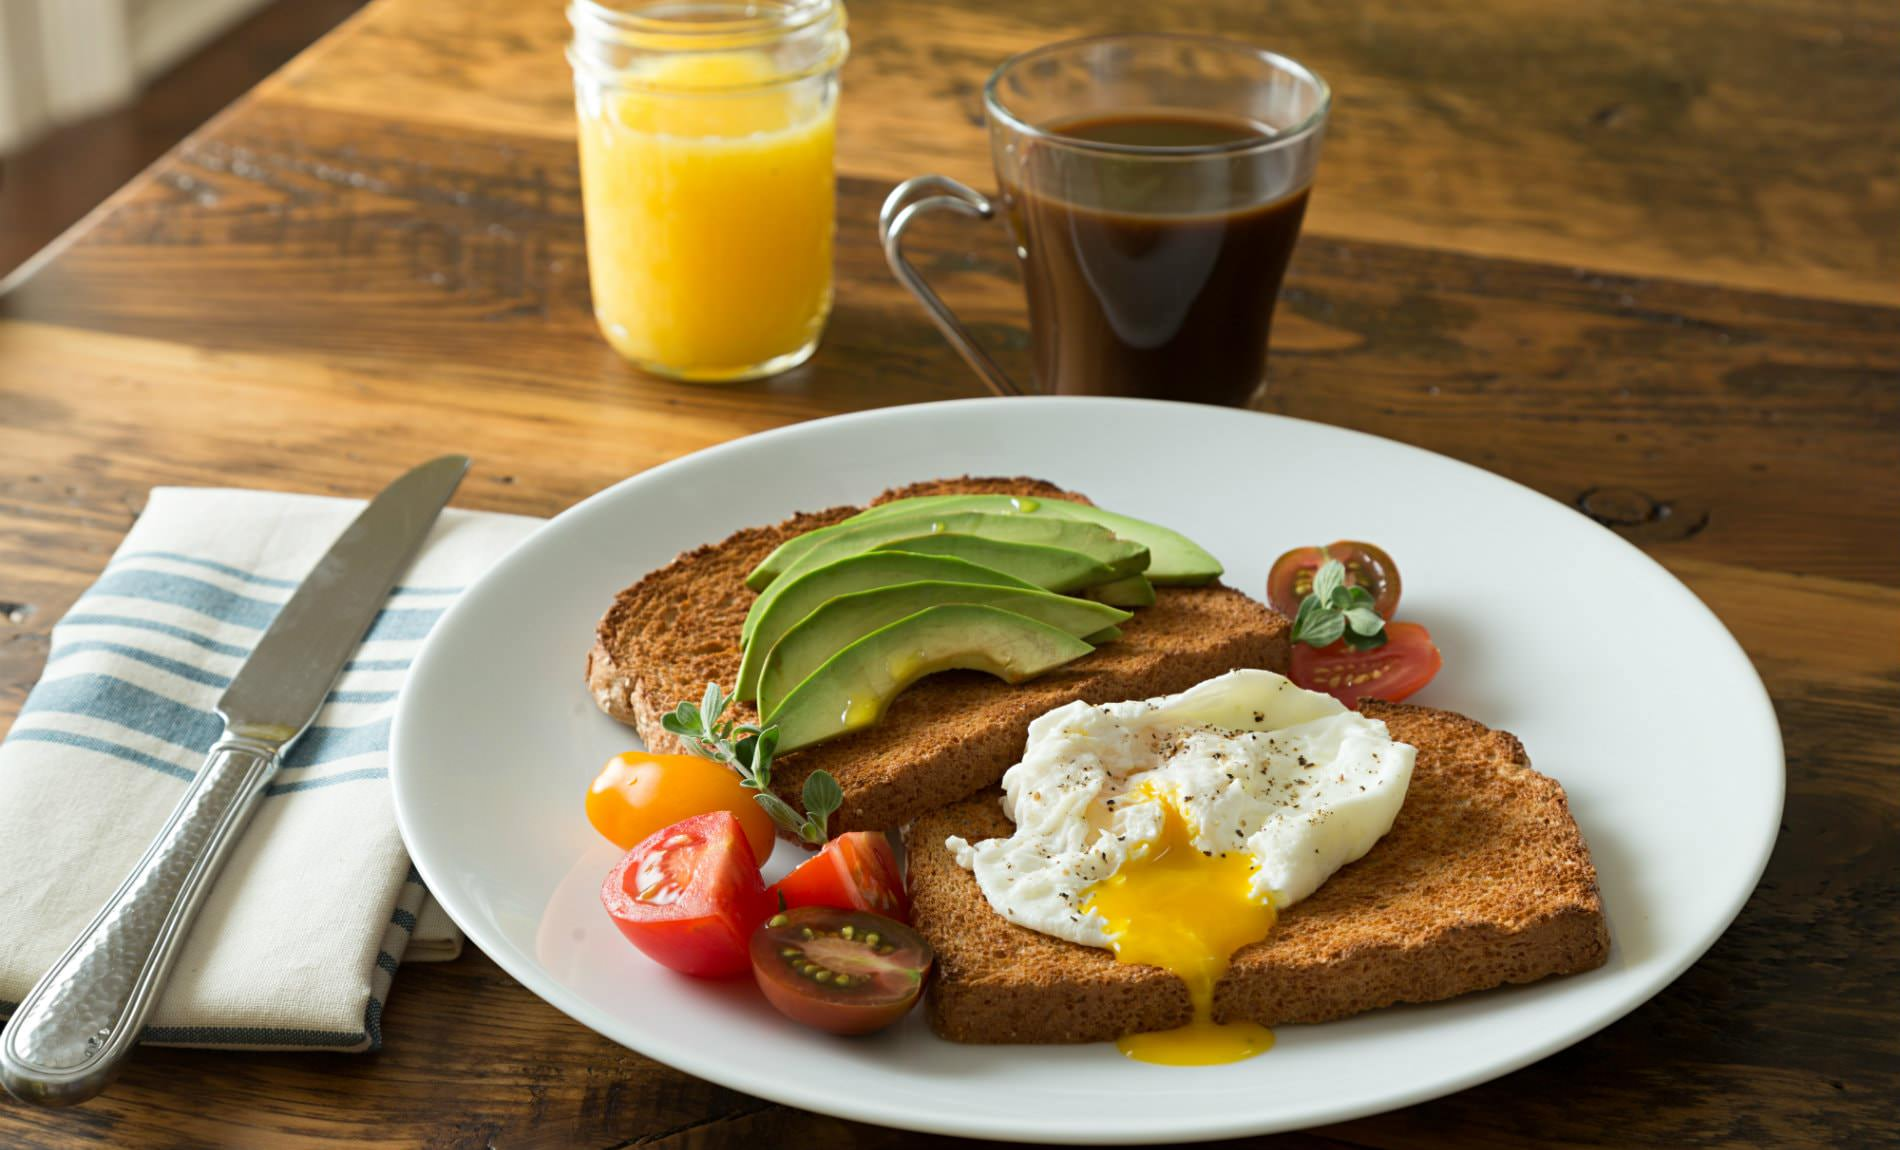 White plate of toast, avocado slices, fried egg and sliced cherry tomatoes, glass of juice and cup of coffee